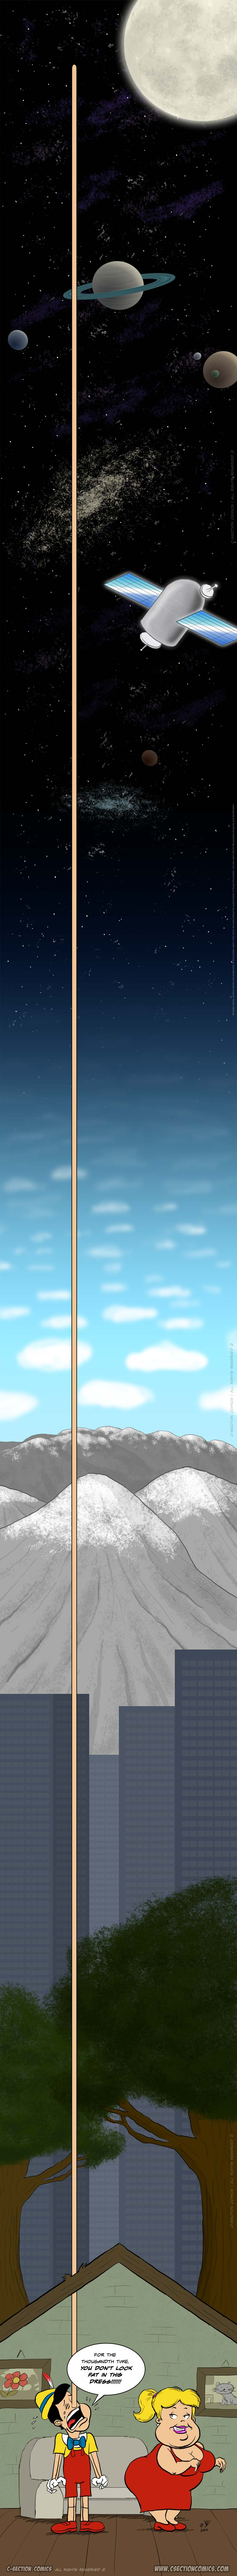 comic-2013-07-24-painful-truth-painful-lie-40p.jpg